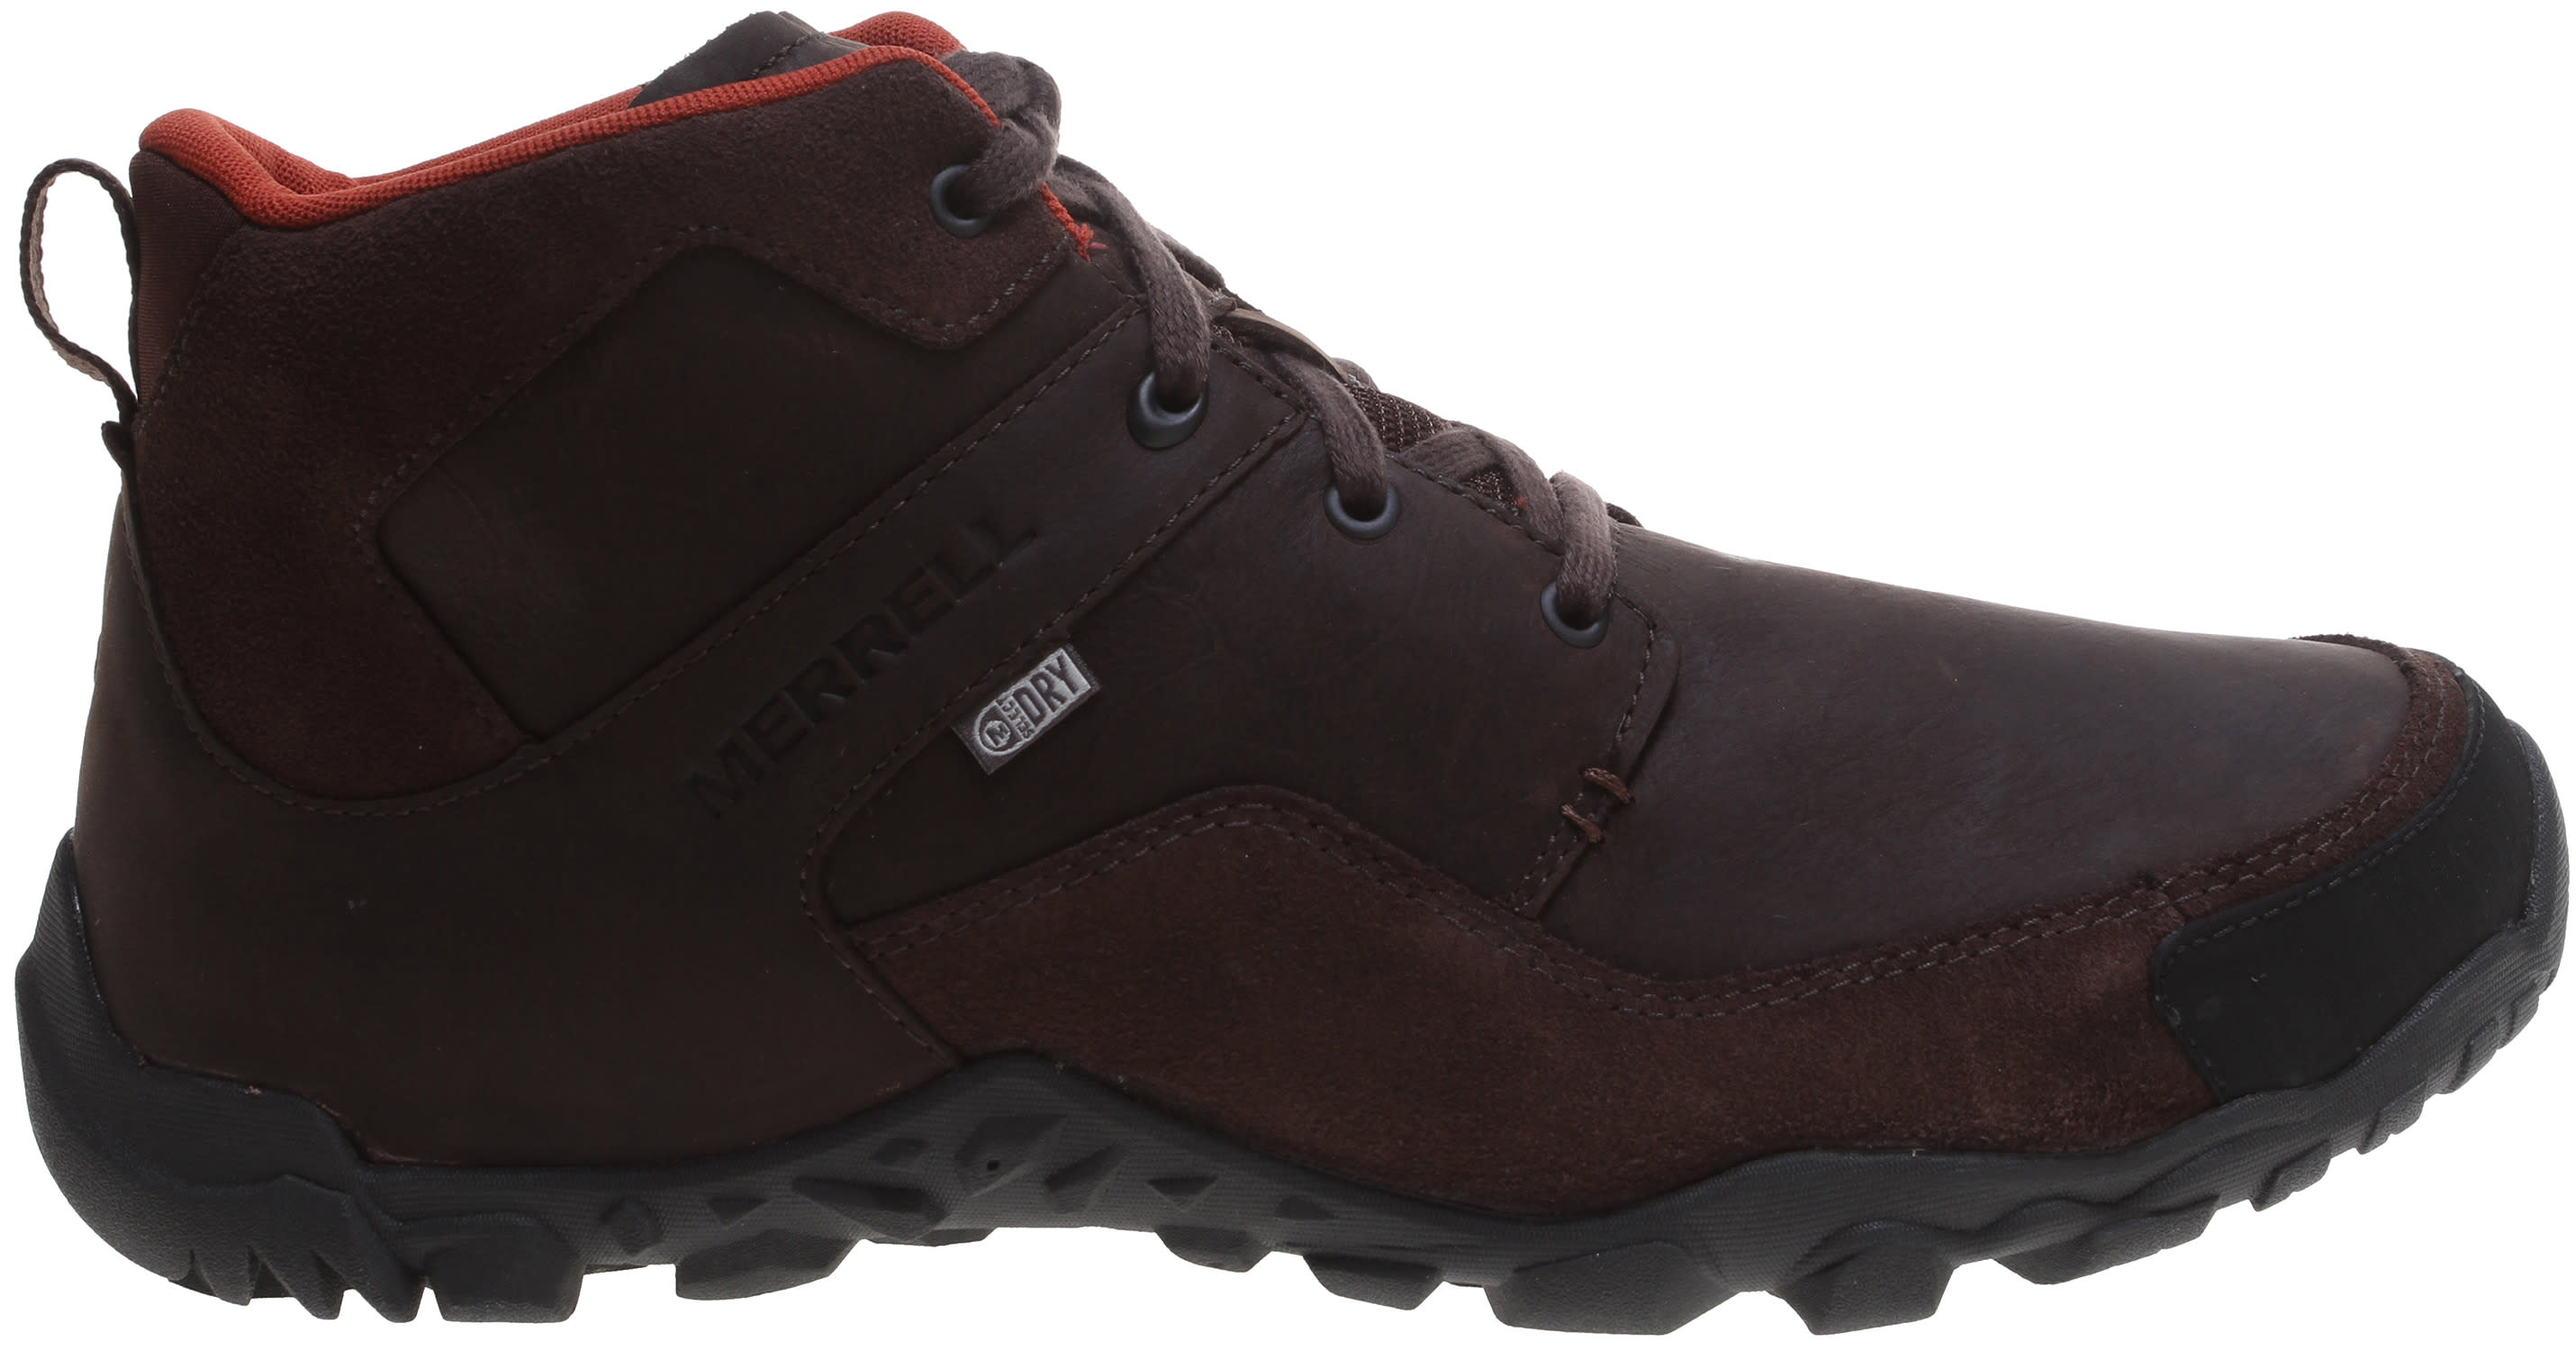 Ski Boots Sale >> On Sale Merrell Telluride Mid Waterproof Boots up to 50% off